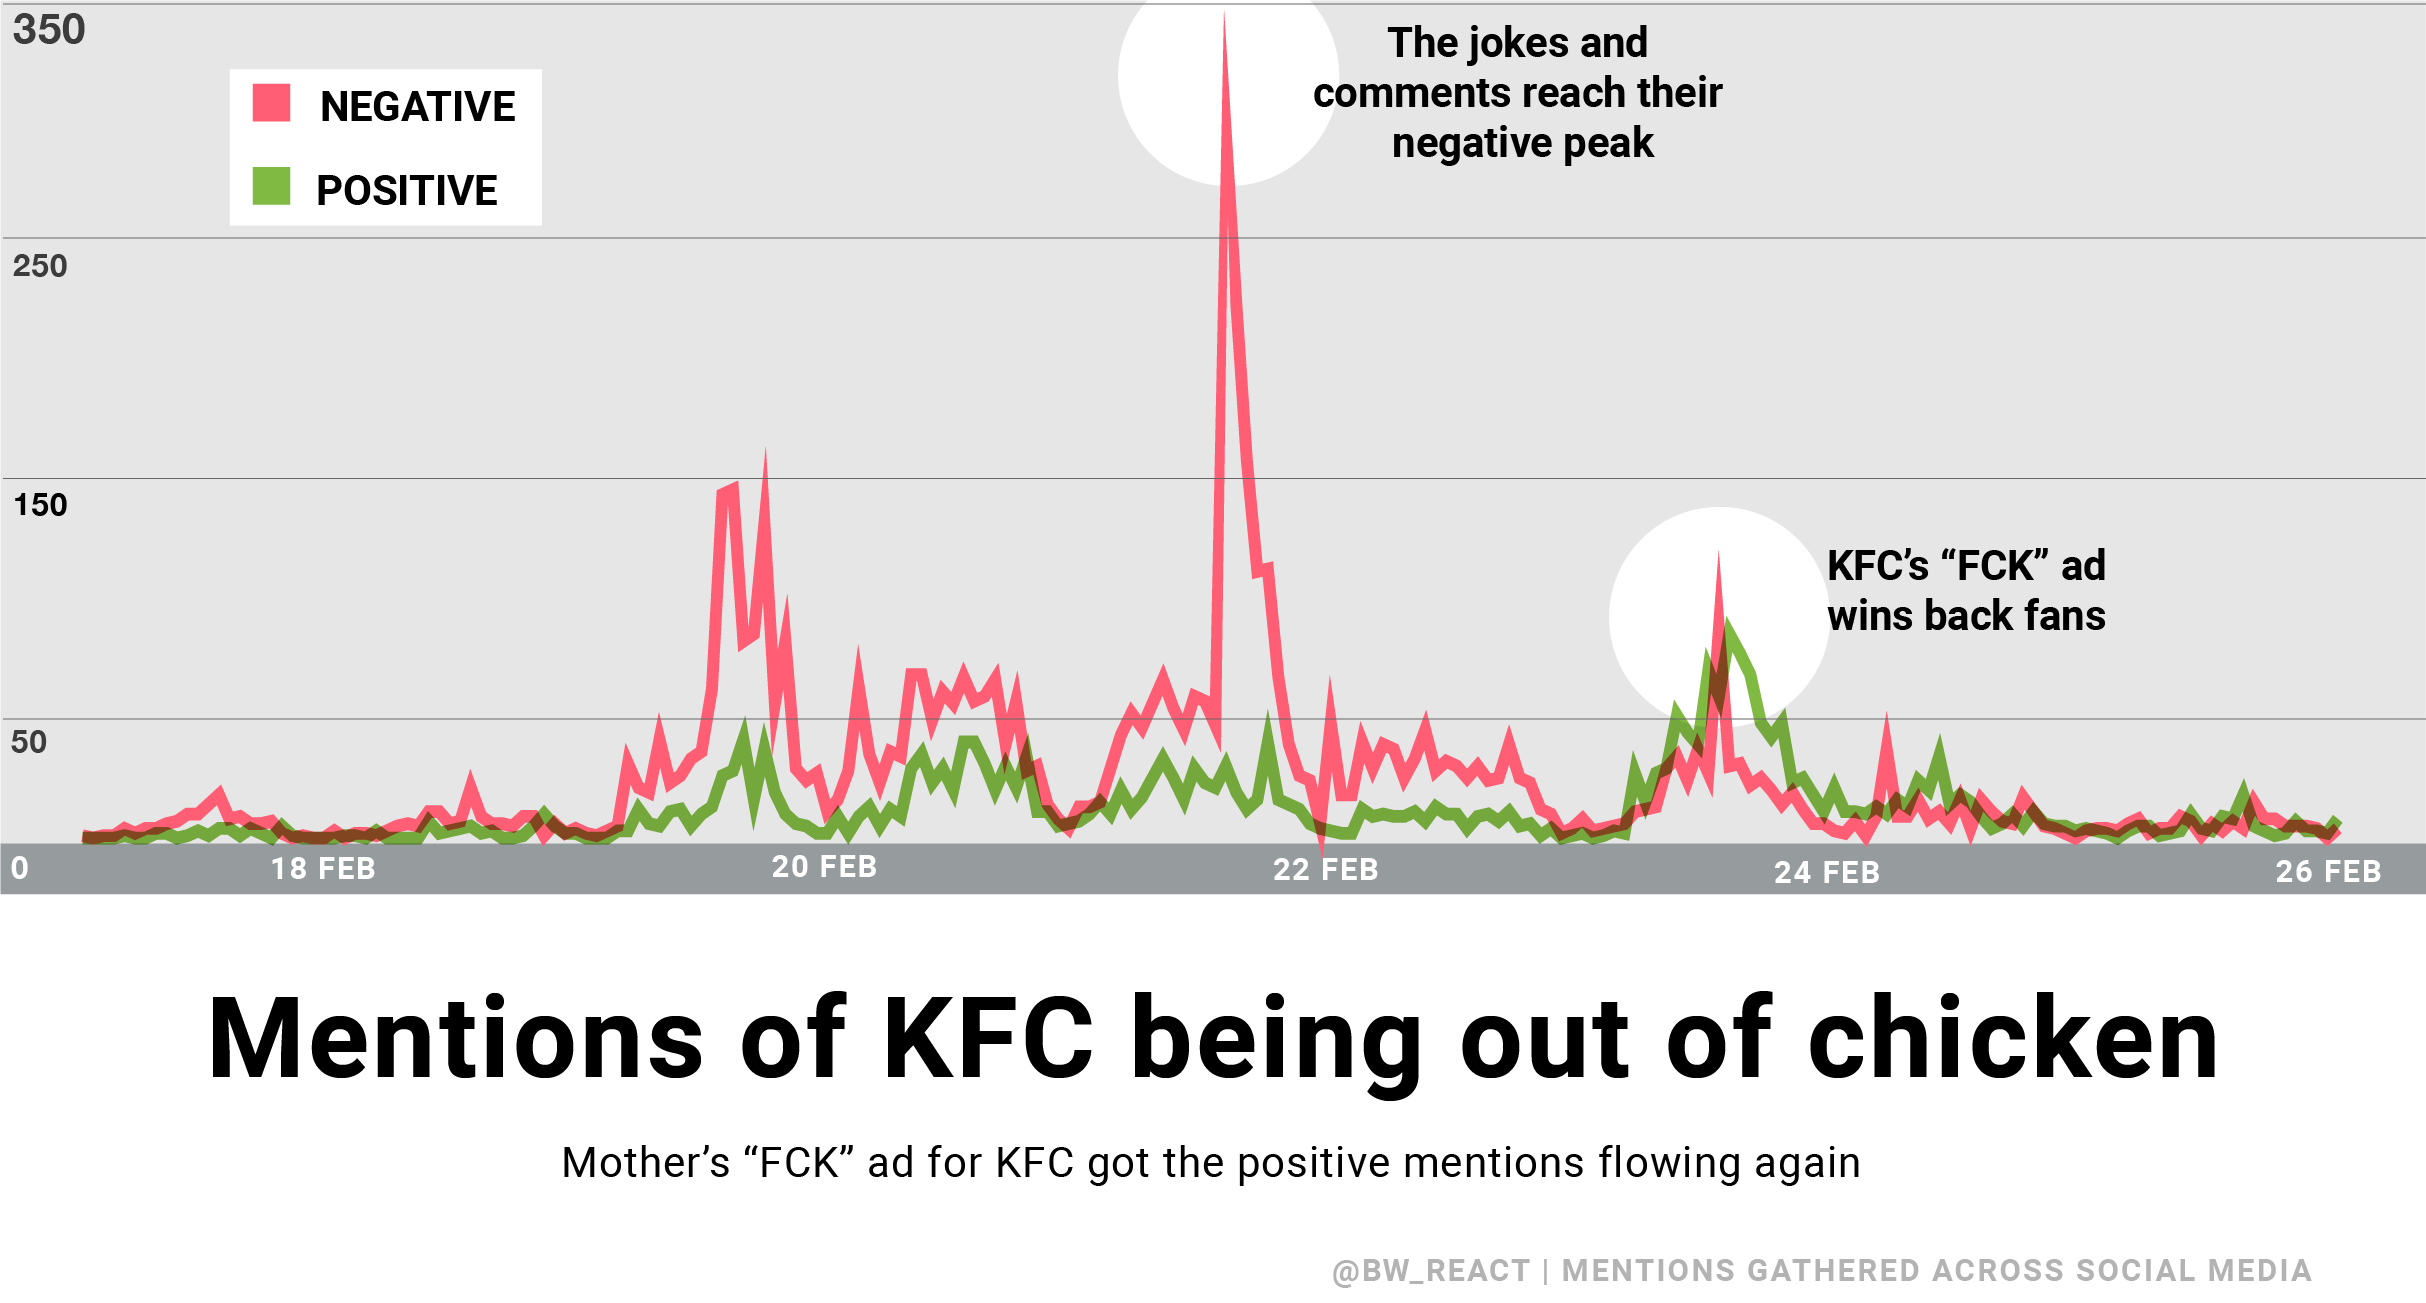 Positive and negative mentions of KFC running out of chicken are mapped on a line graph.